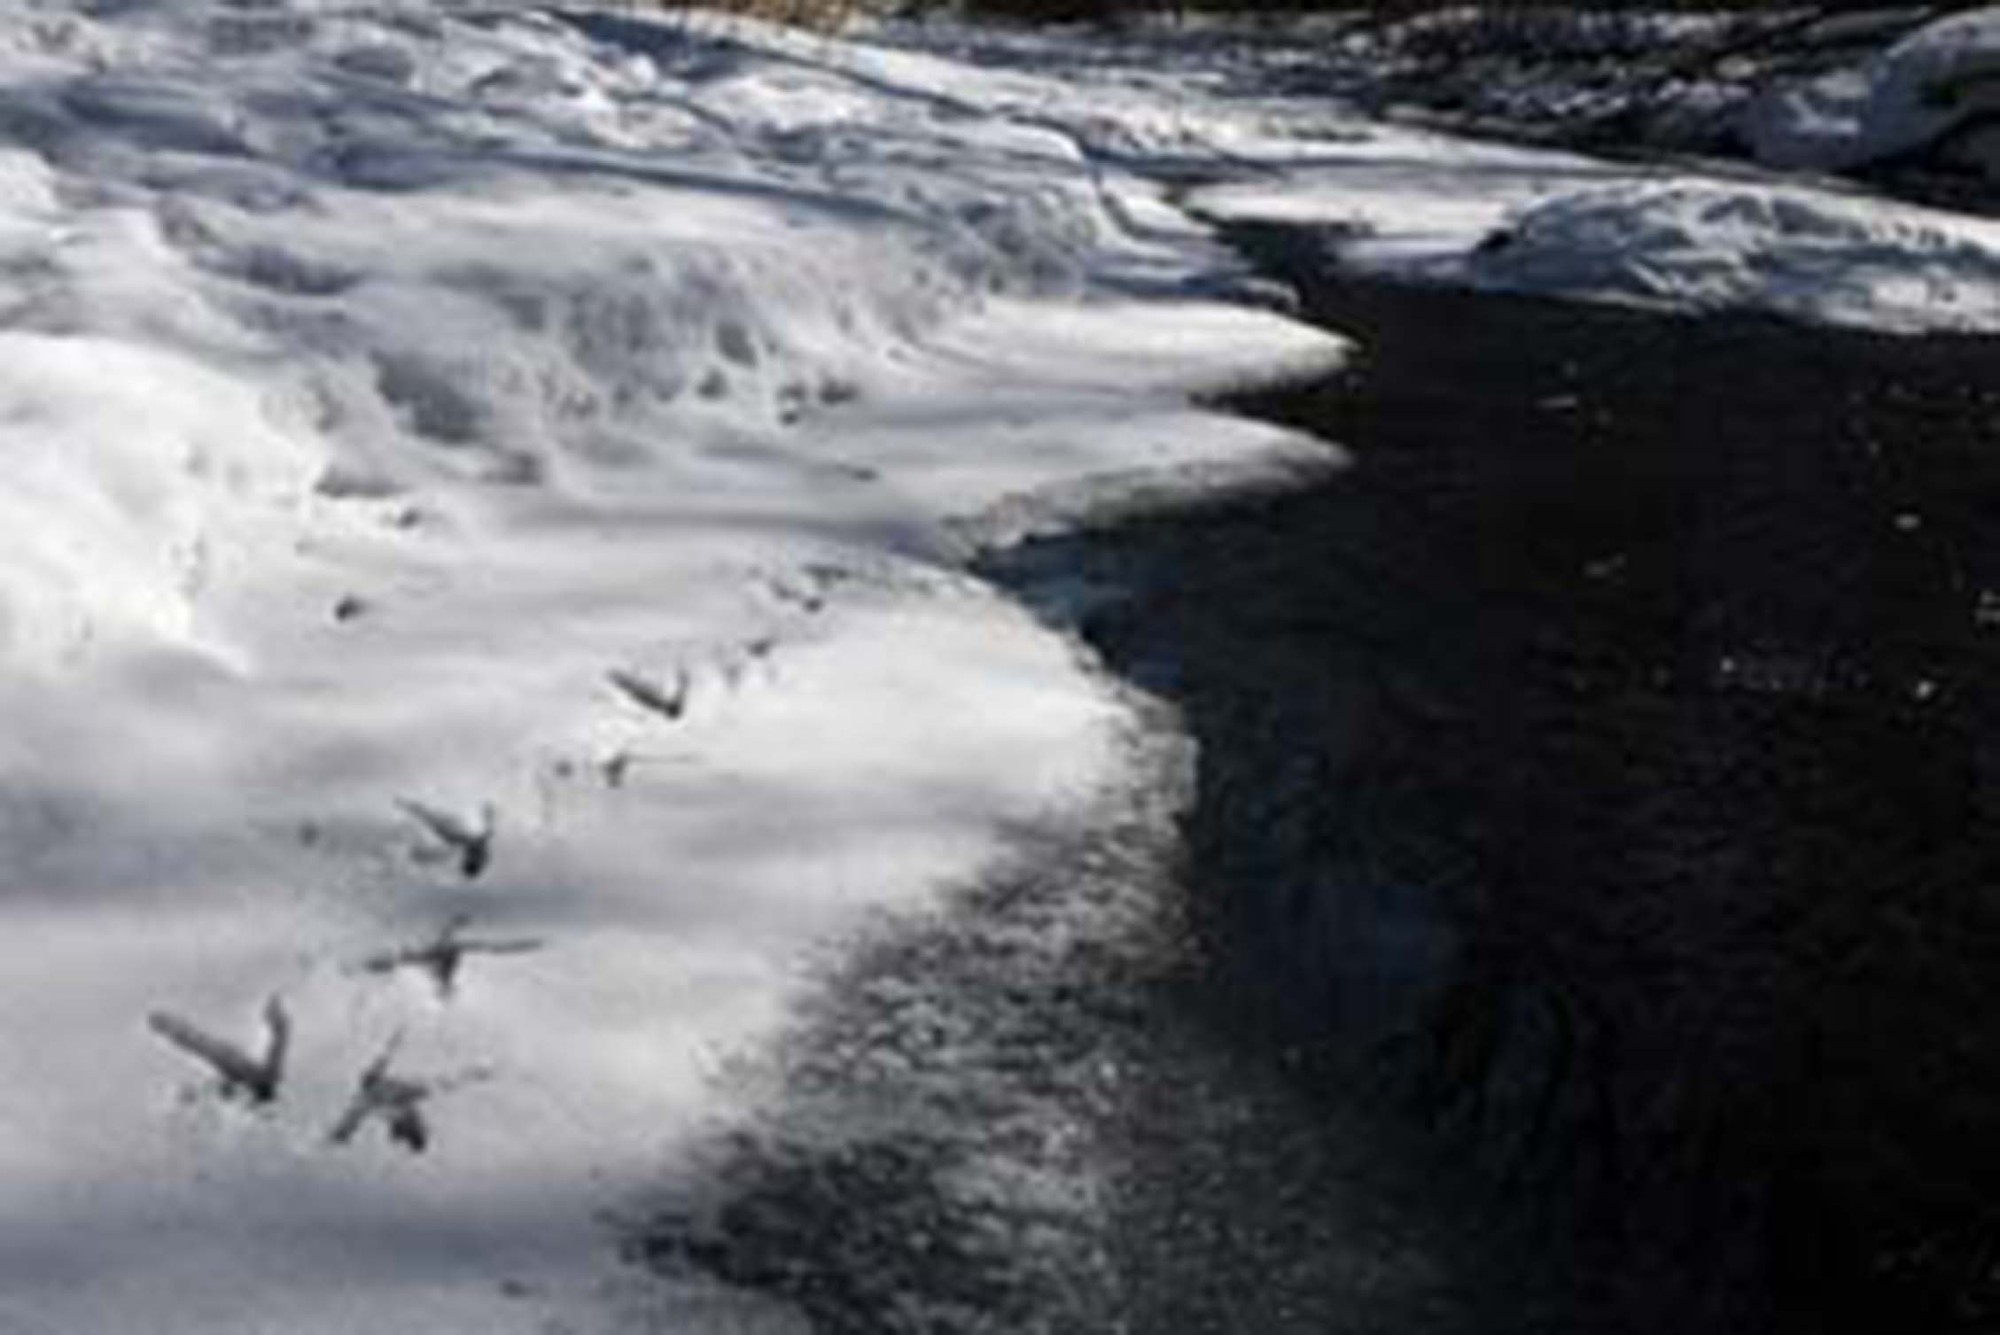 Slaght and fellow researchers would follow owl tracks down frozen rivers.